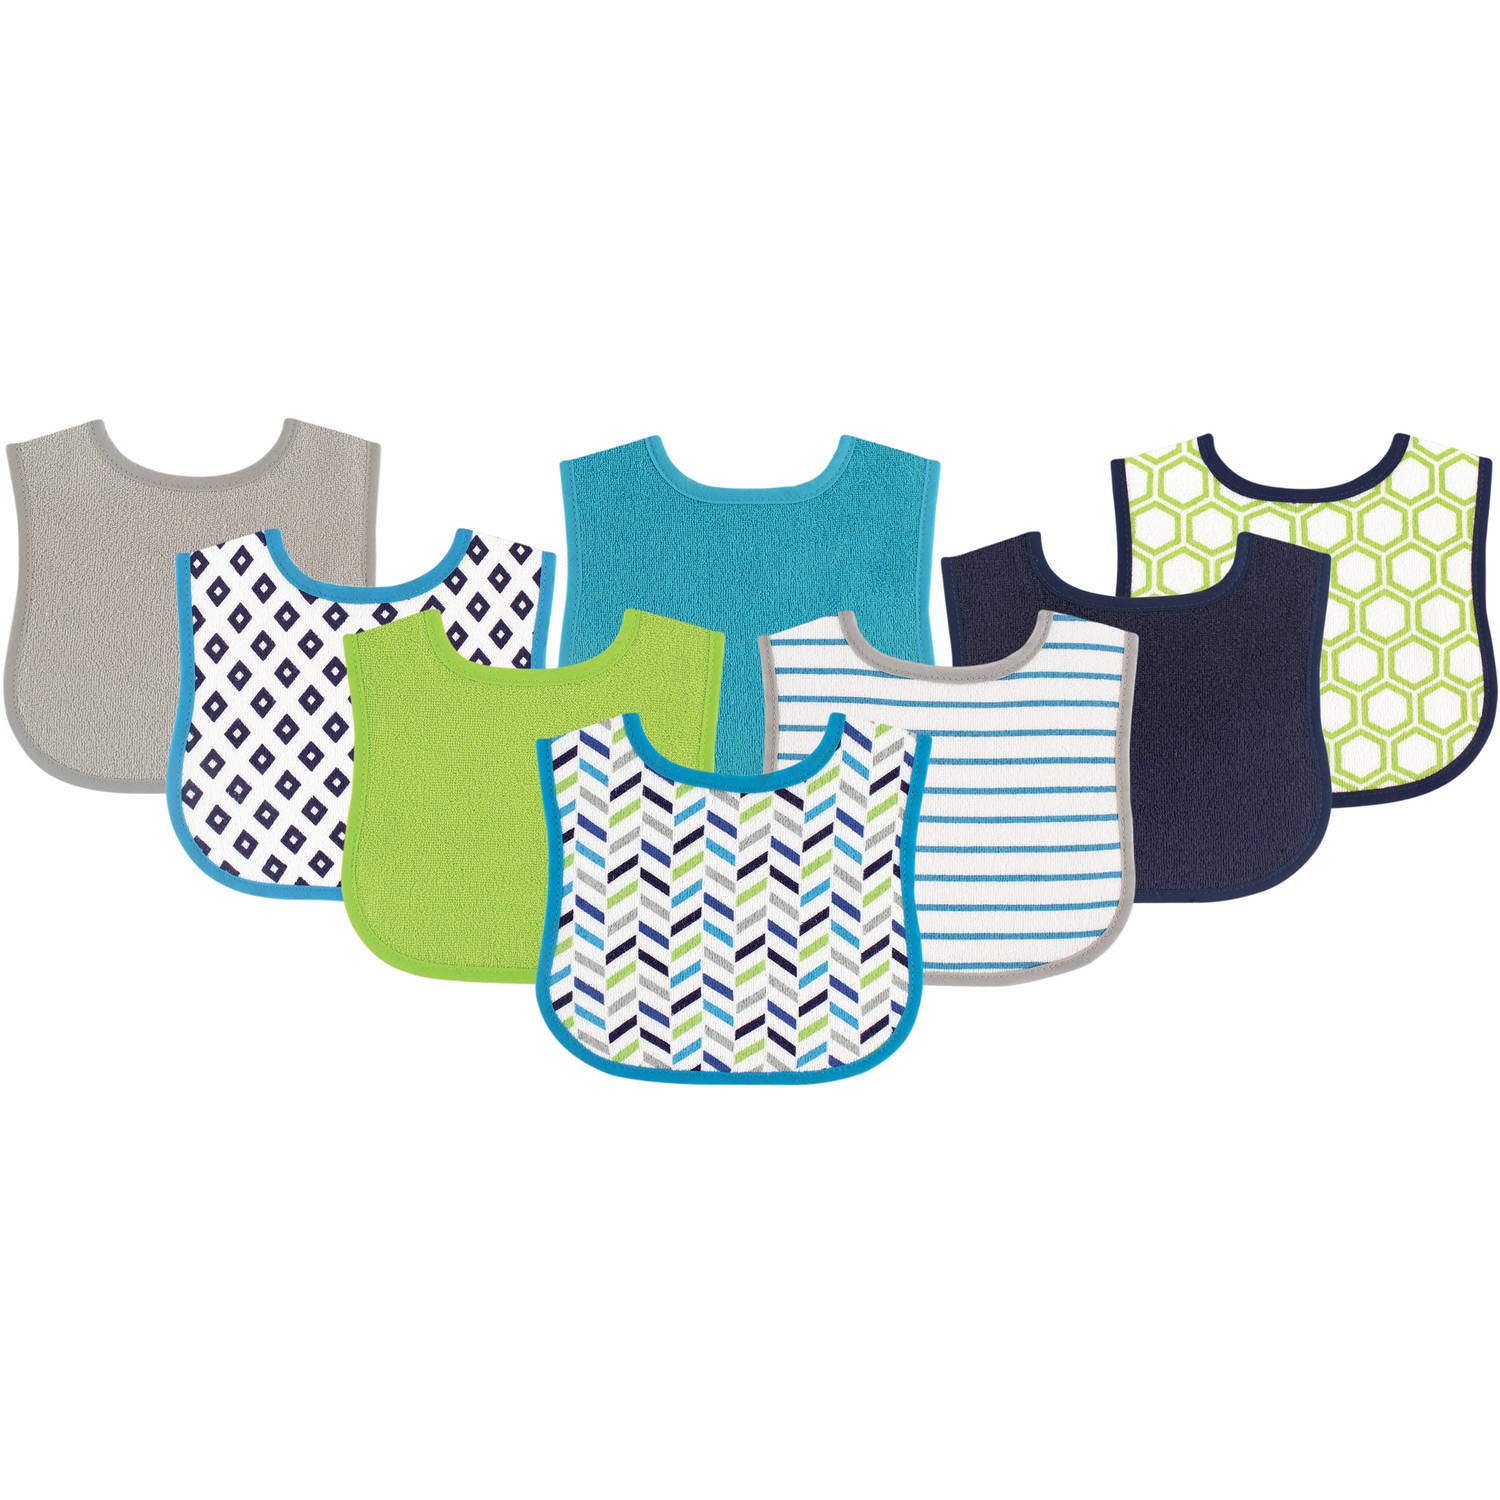 Luvable Friends Drooler Bib, 8pk, Geometric Boy